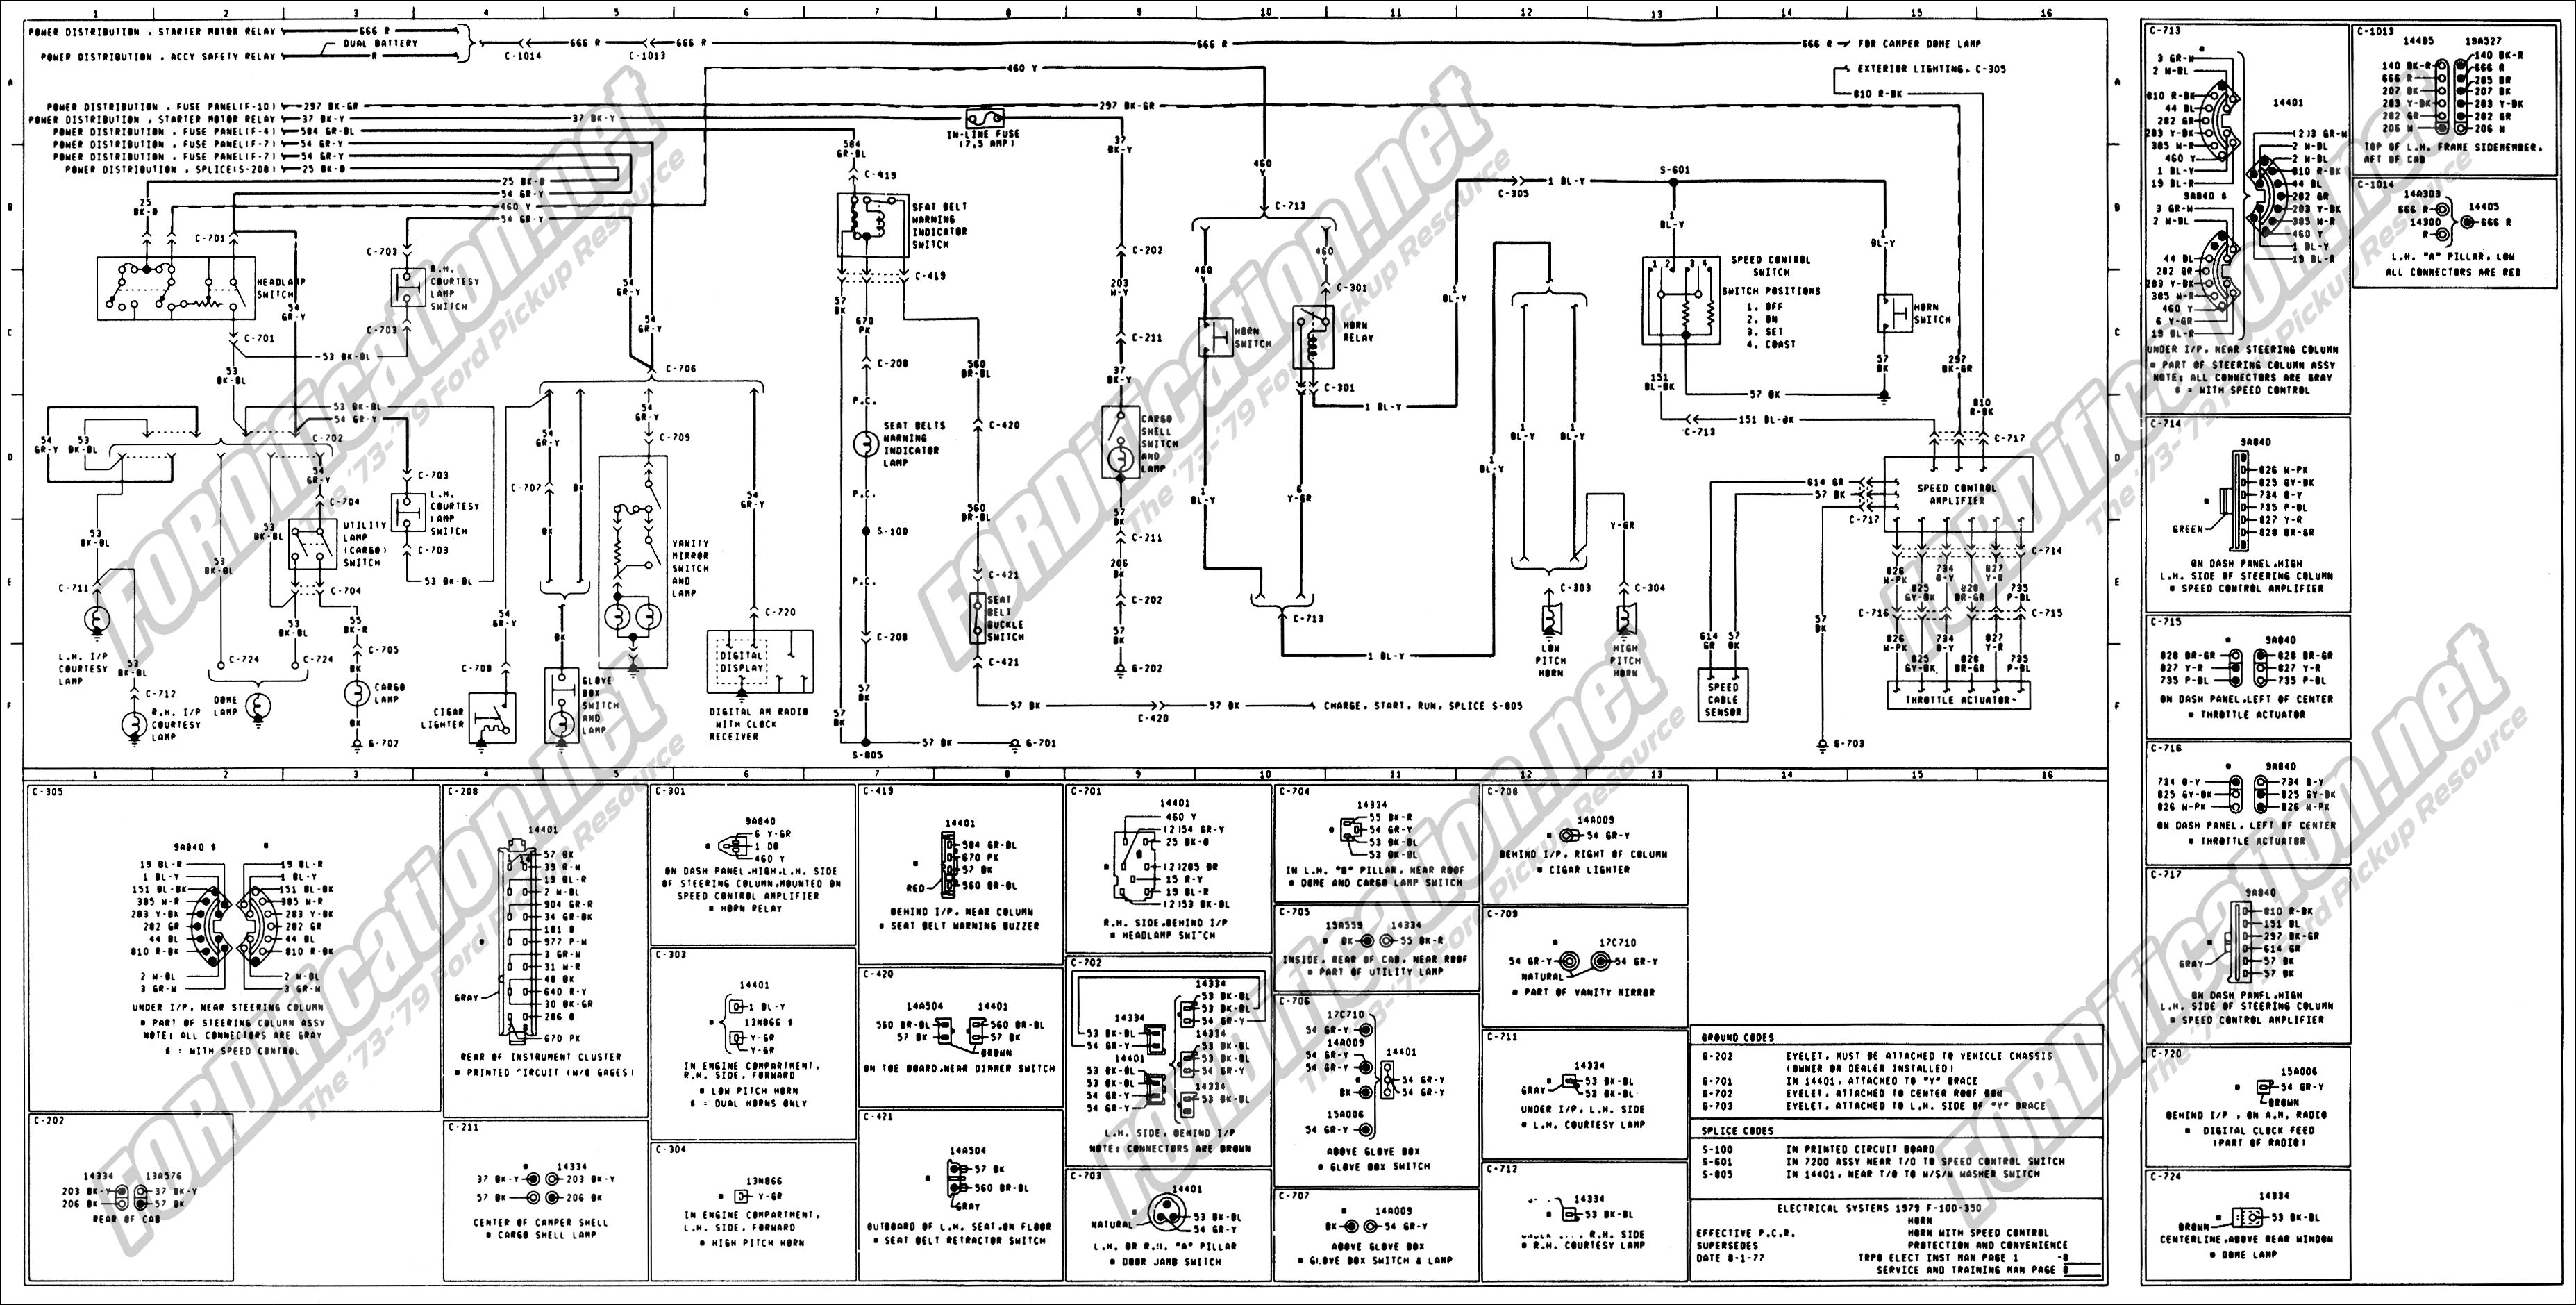 wiring_79master_8of9 1973 1979 ford truck wiring diagrams & schematics fordification net 1971 ford f250 wiring diagram at metegol.co